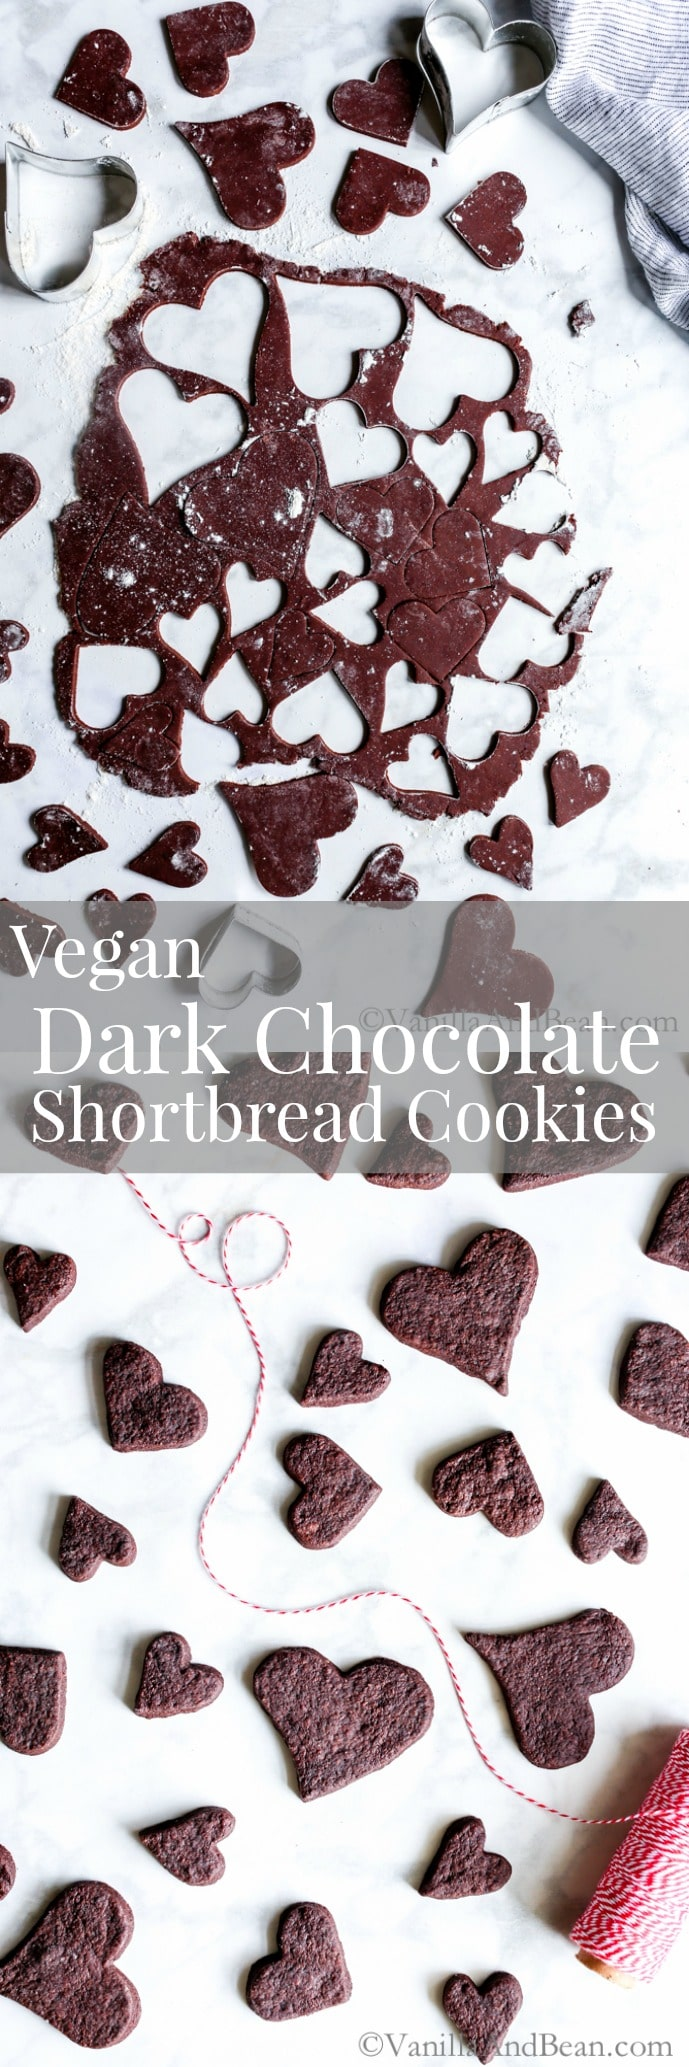 Rich, and over the top chocolatey, Vegan Dark Chocolate Shortbread Cookies are cut to whatever shape you want! Make sandwich cookies, decorate them or enjoy just as they are. A treat anytime of the year! Vegan. Egg-Free, Dairy-Free., Recipe